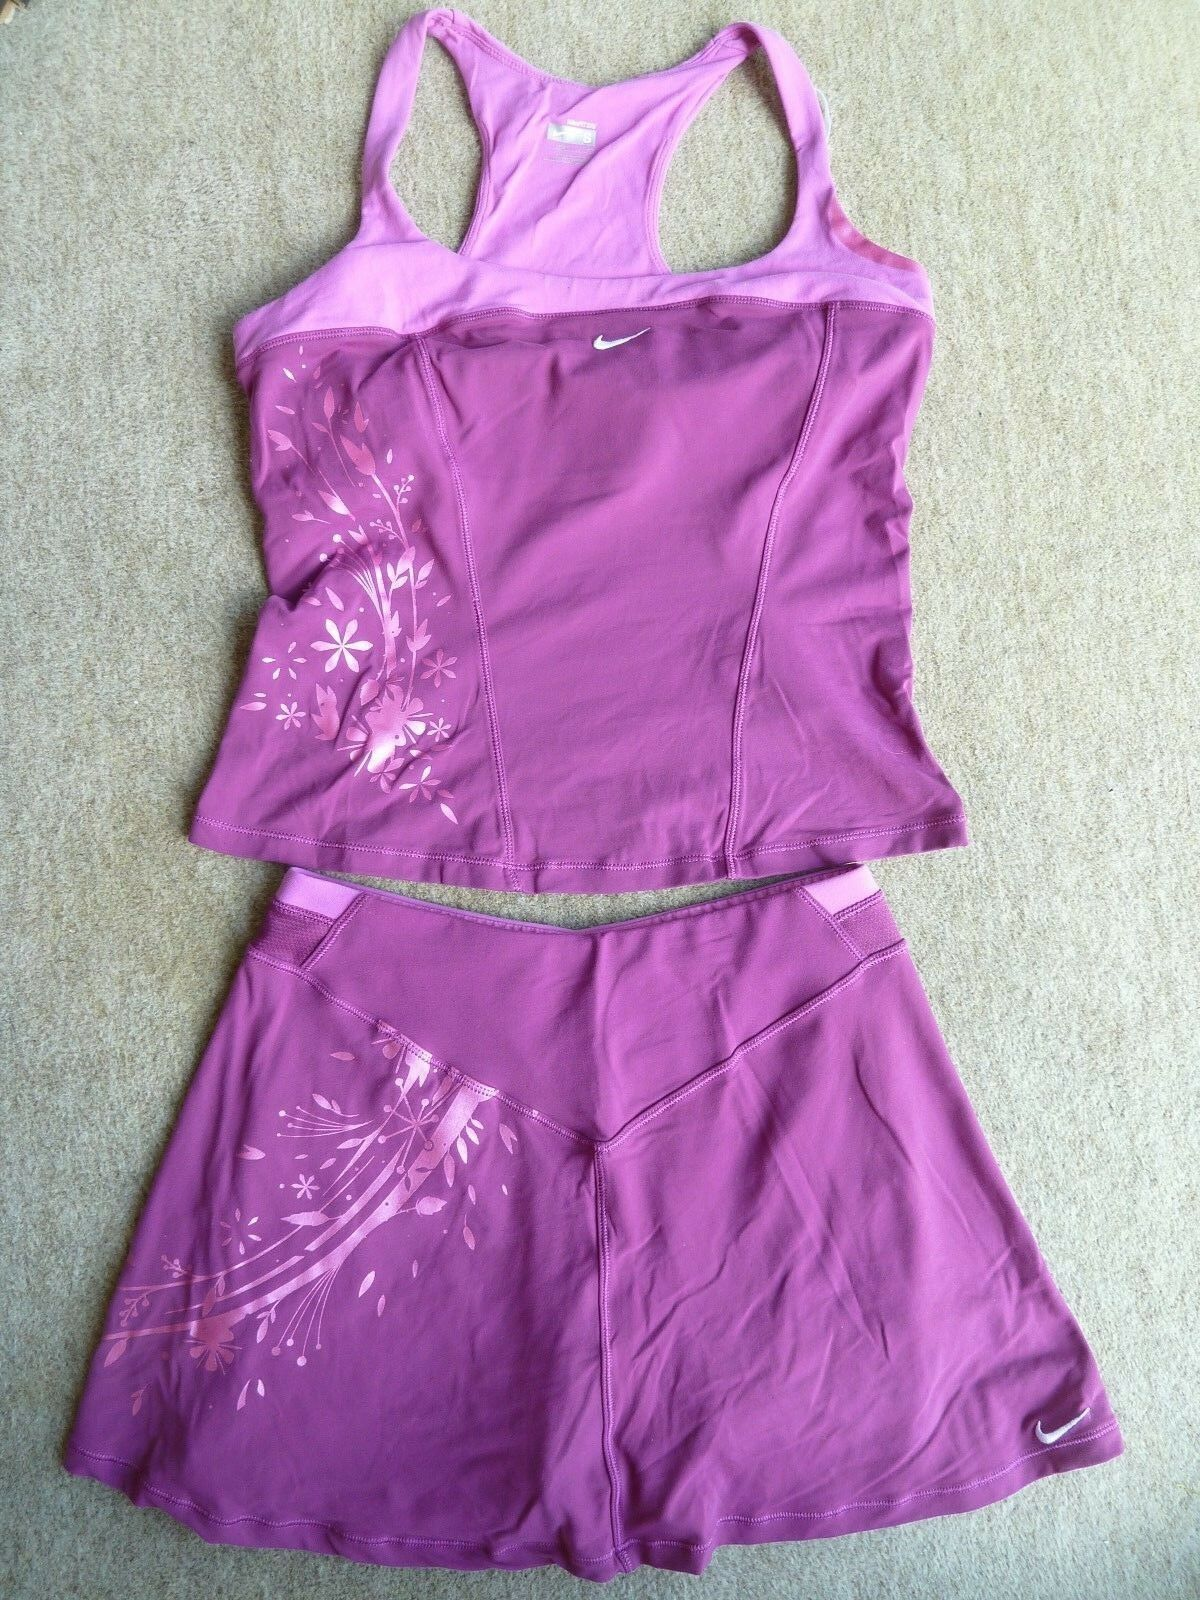 LADIES NIKE TENNIS SKIRT   TOP SET-  SIZE S XS - COLLECTIBLE AS NOW DISCONTINUED